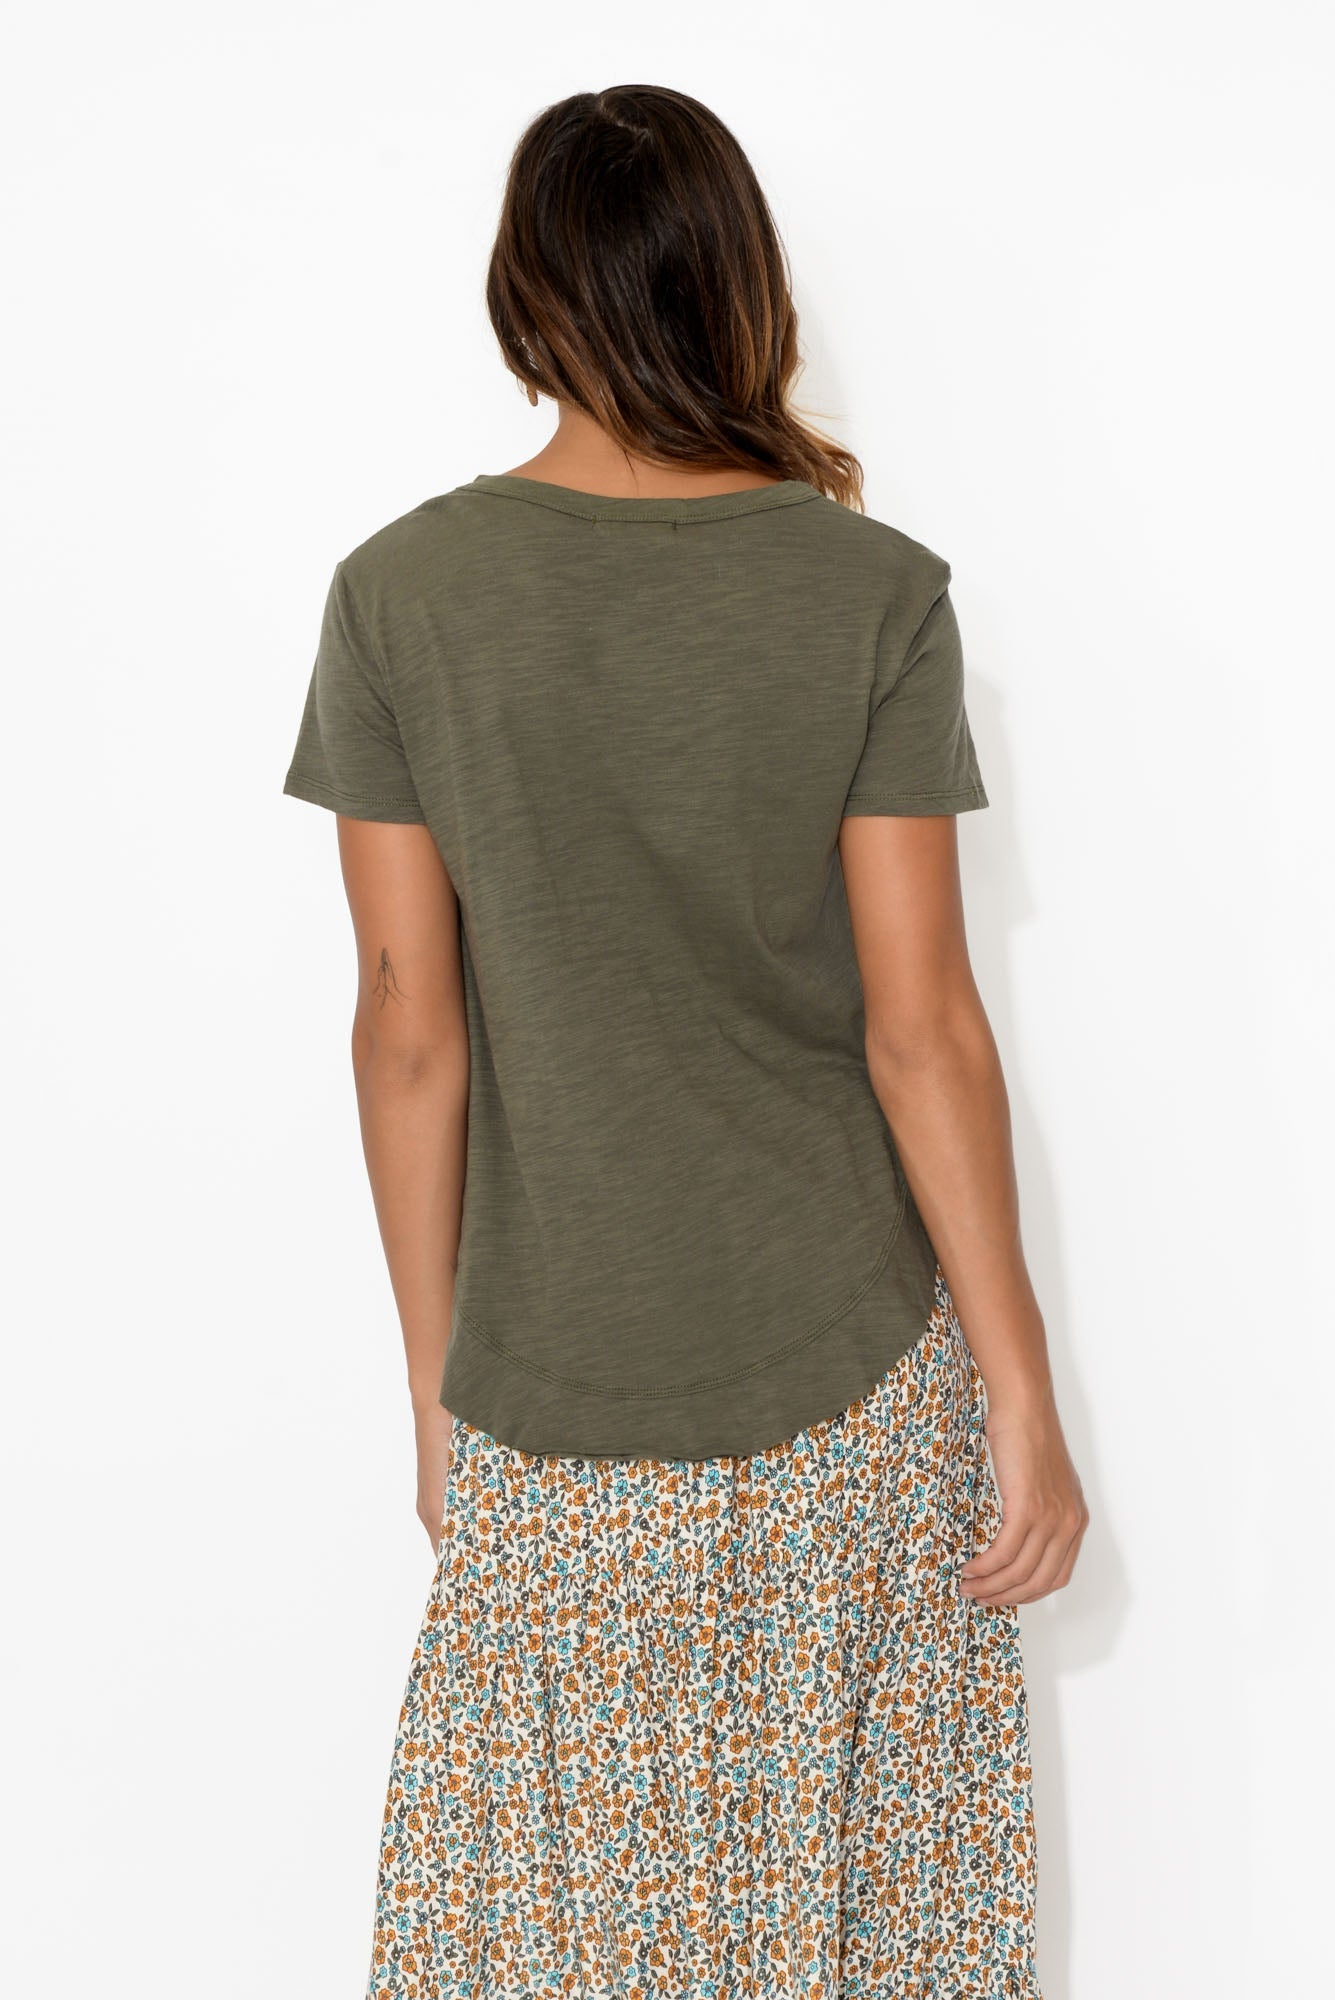 Paddington Khaki Cotton Tee